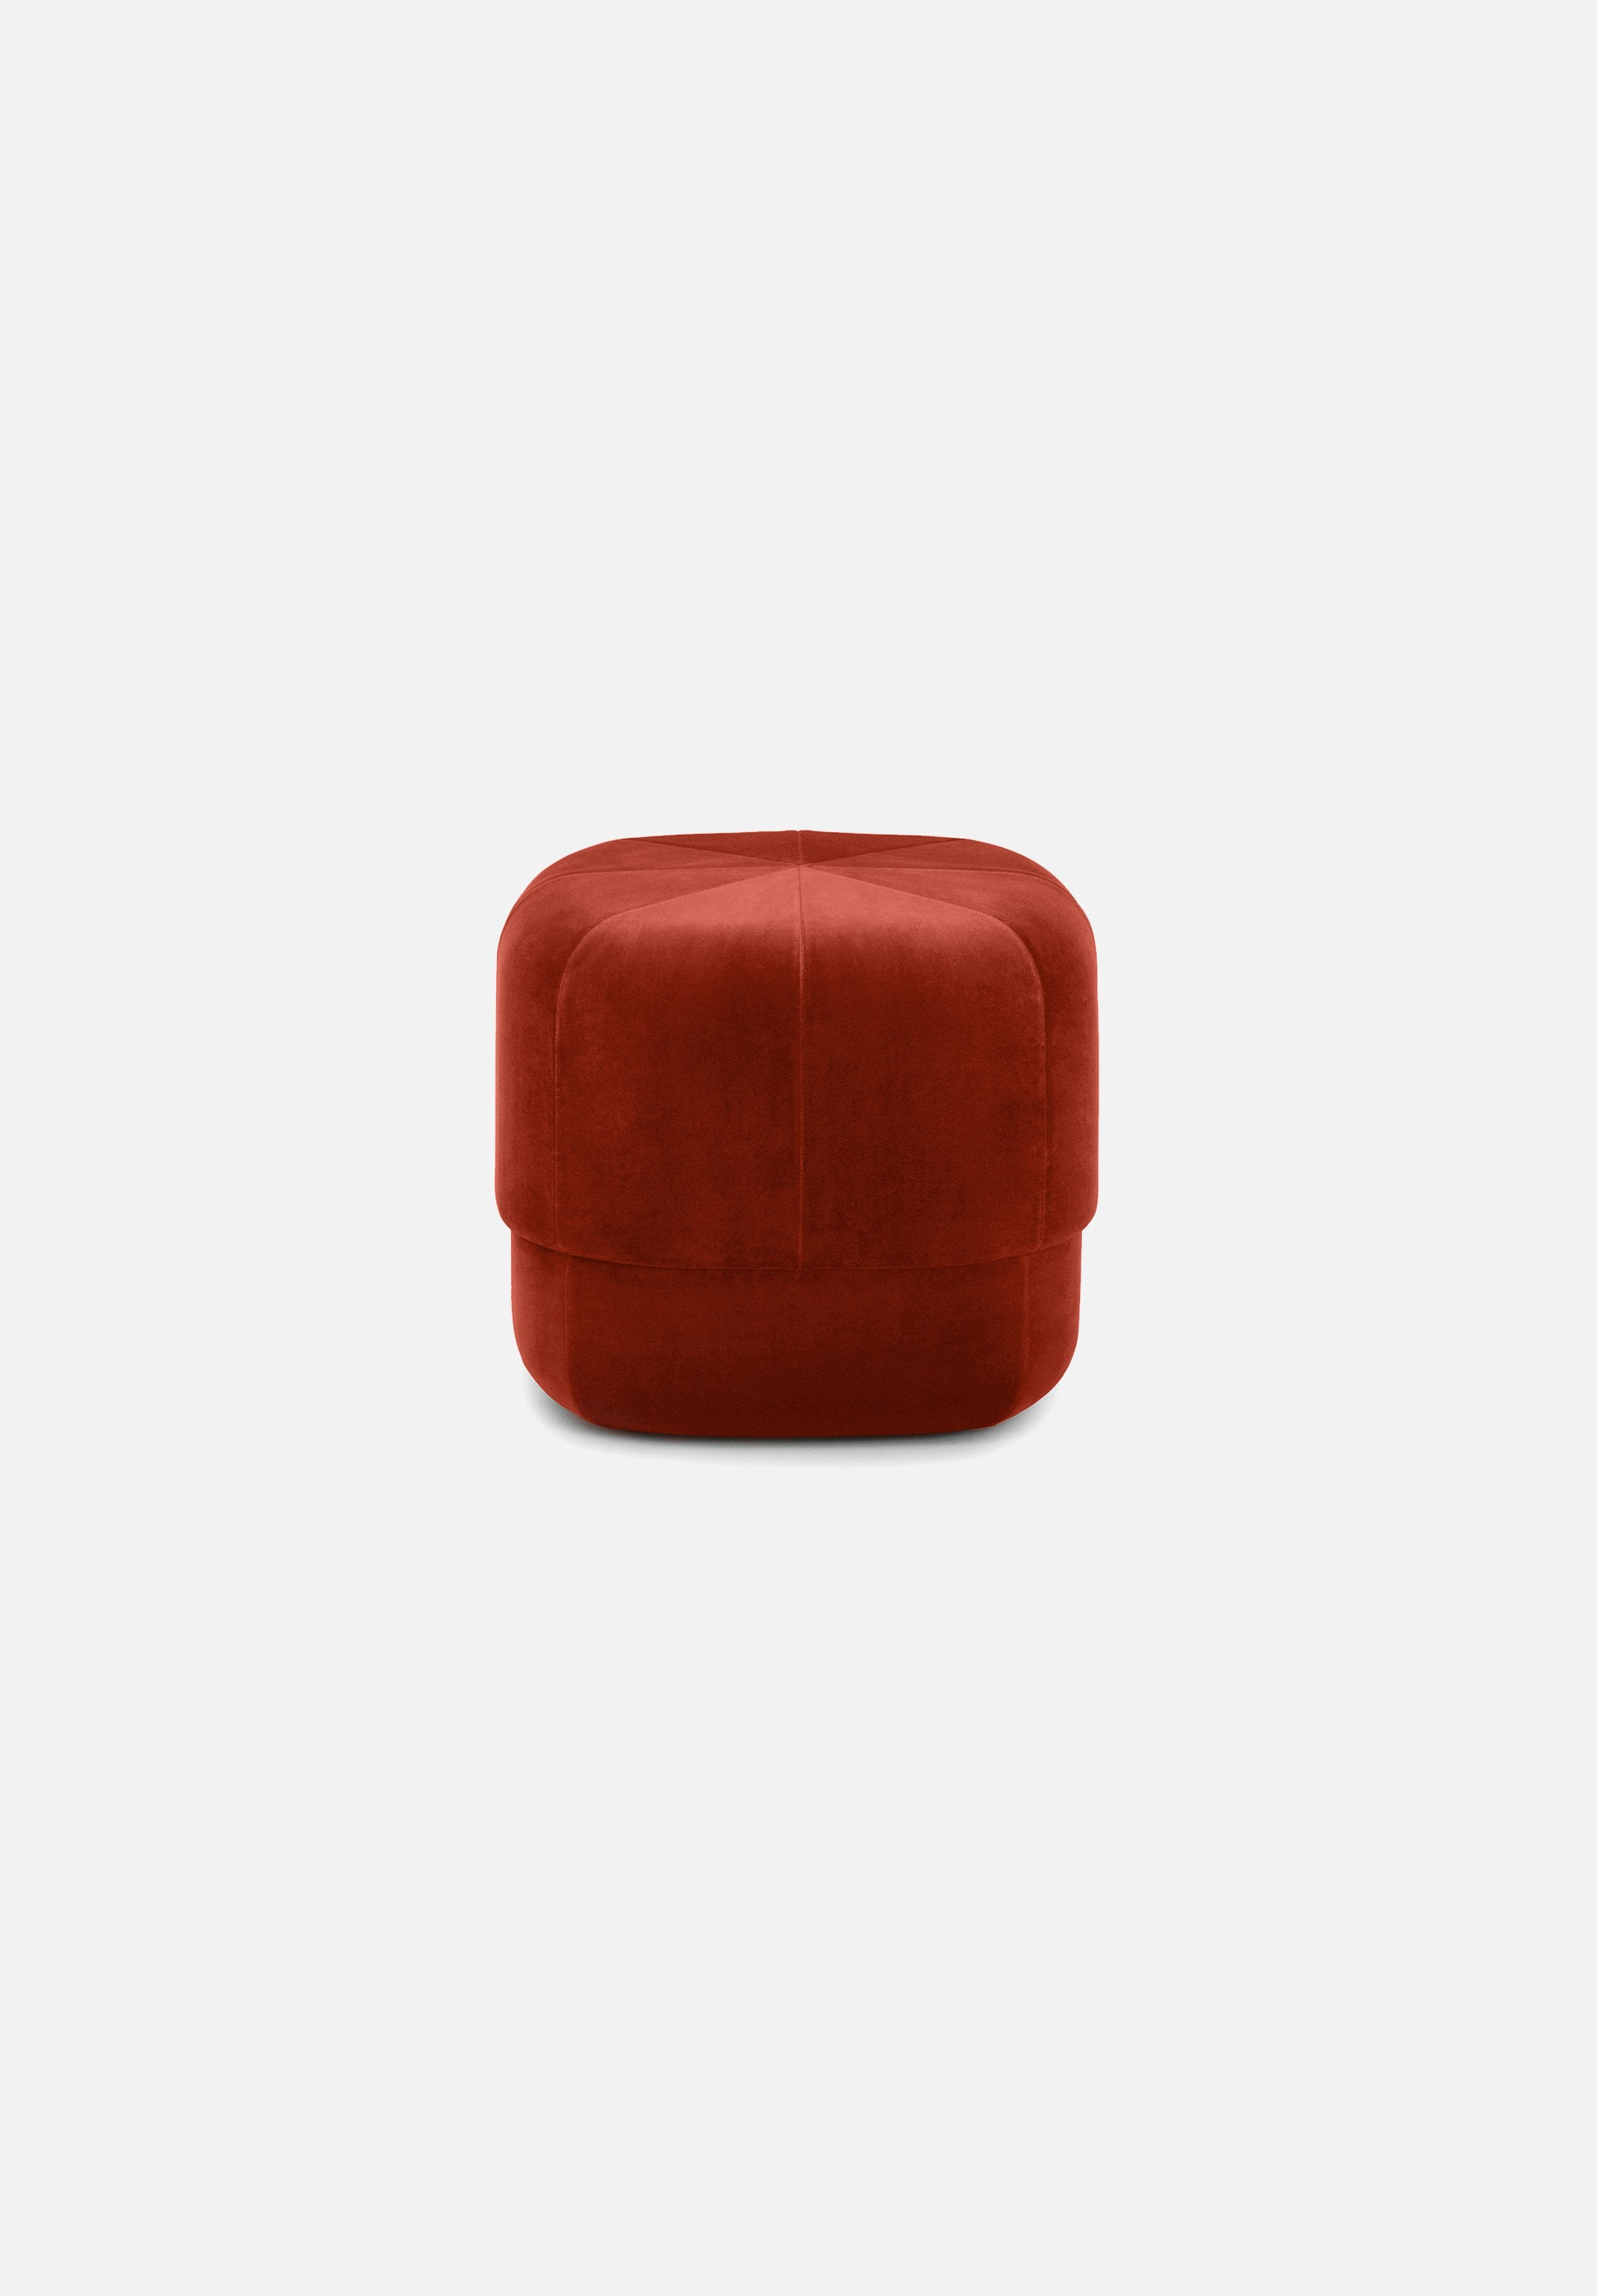 Circus Pouf — Small-Simon Legald-Normann Copenhagen-Rust-Average